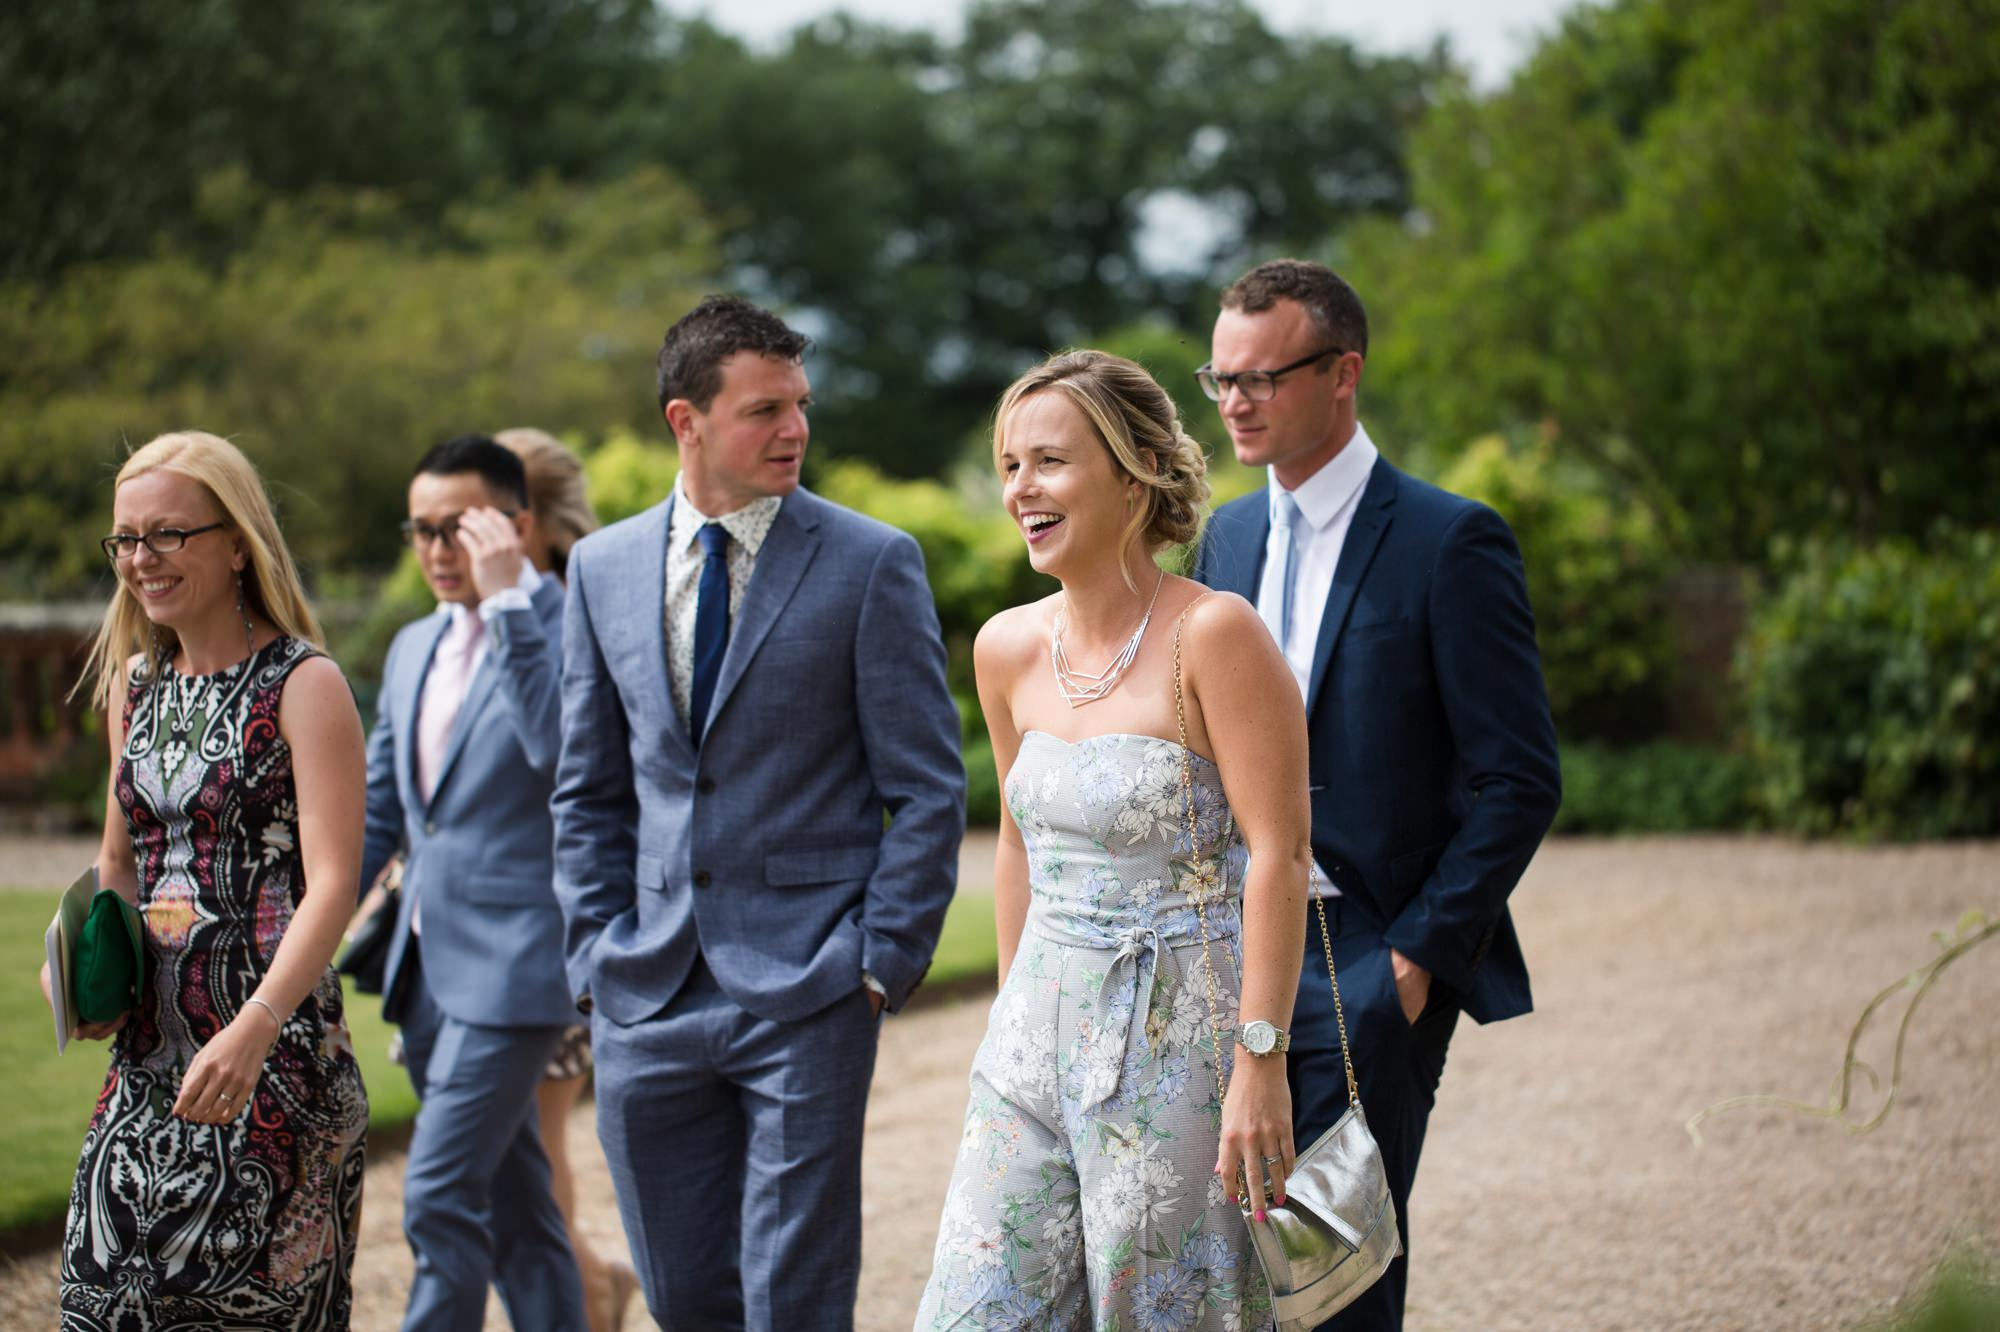 hodsock-priory-wedding-18